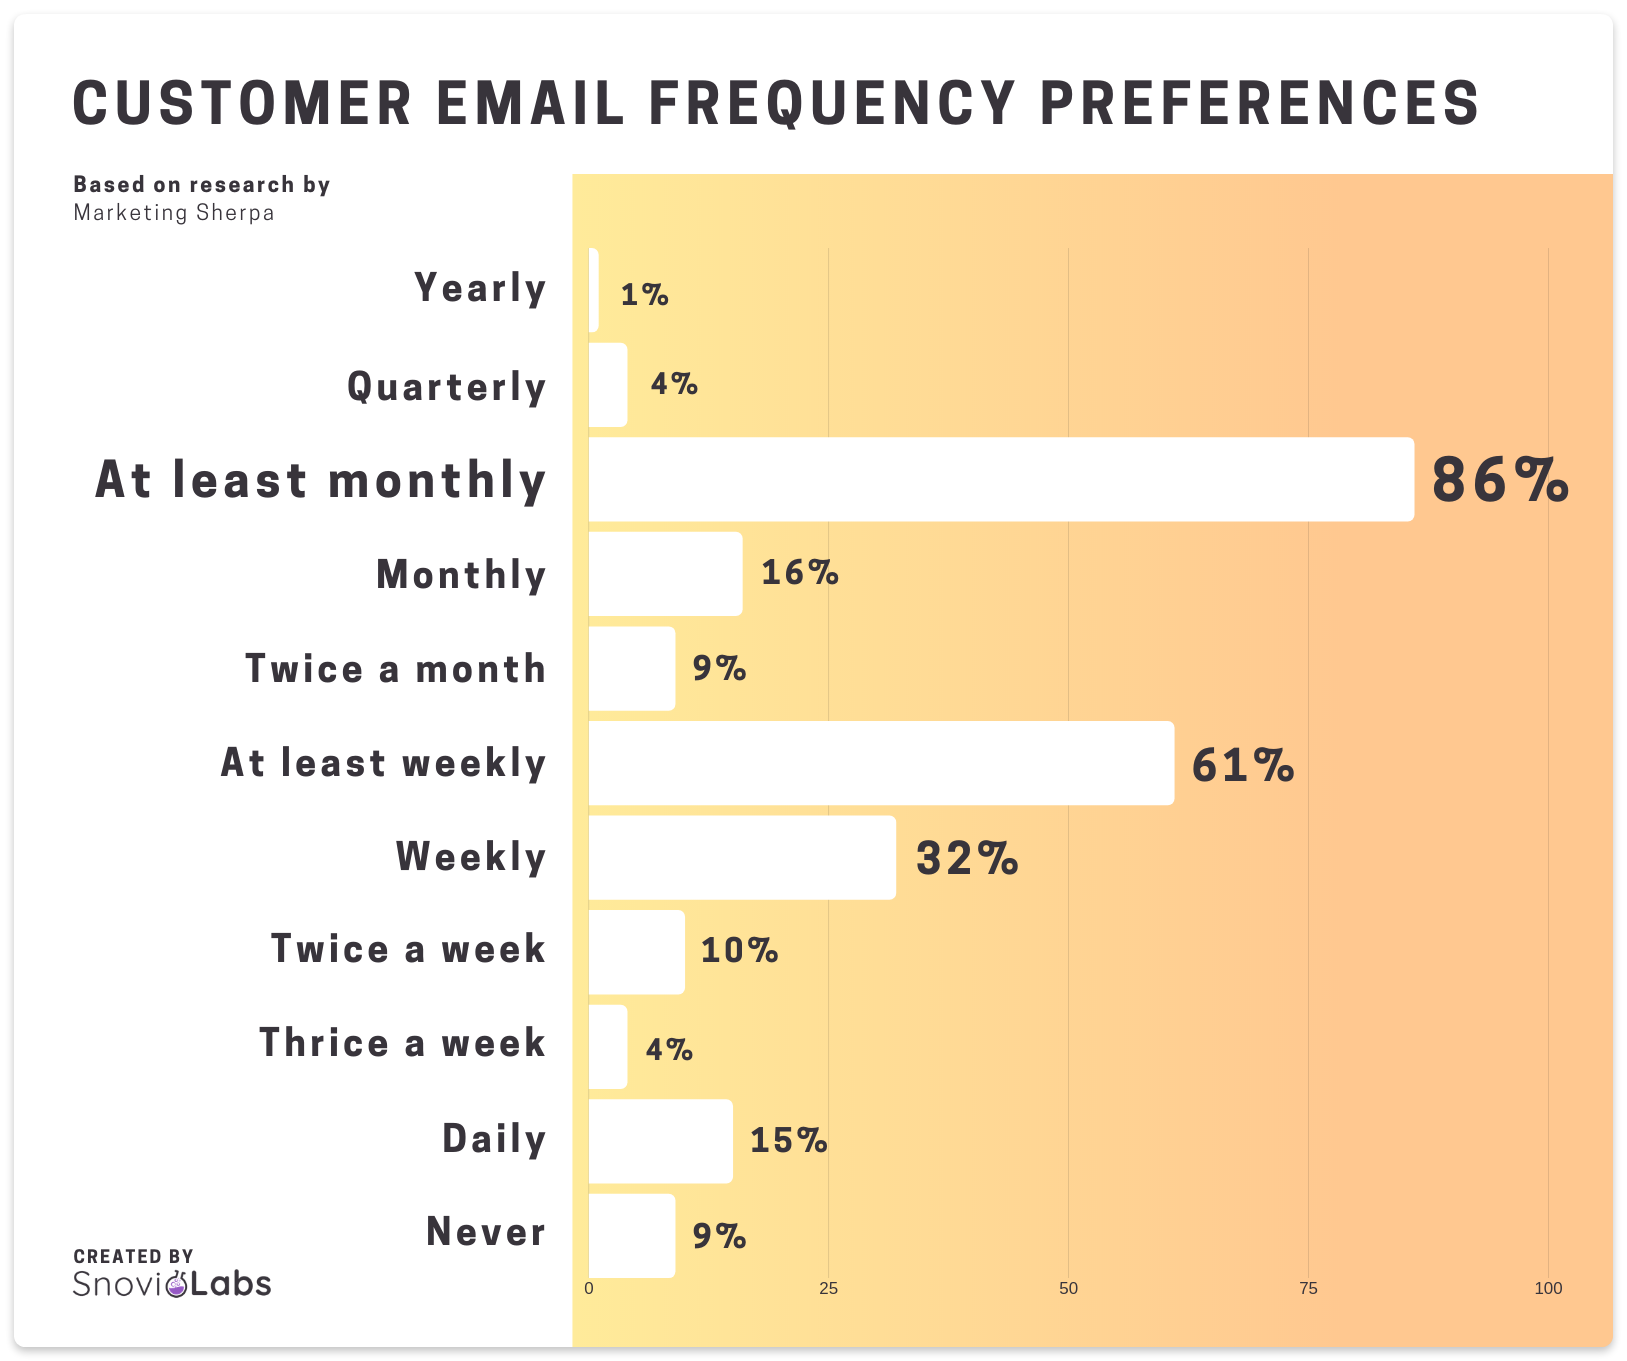 Customer email frequency preferences